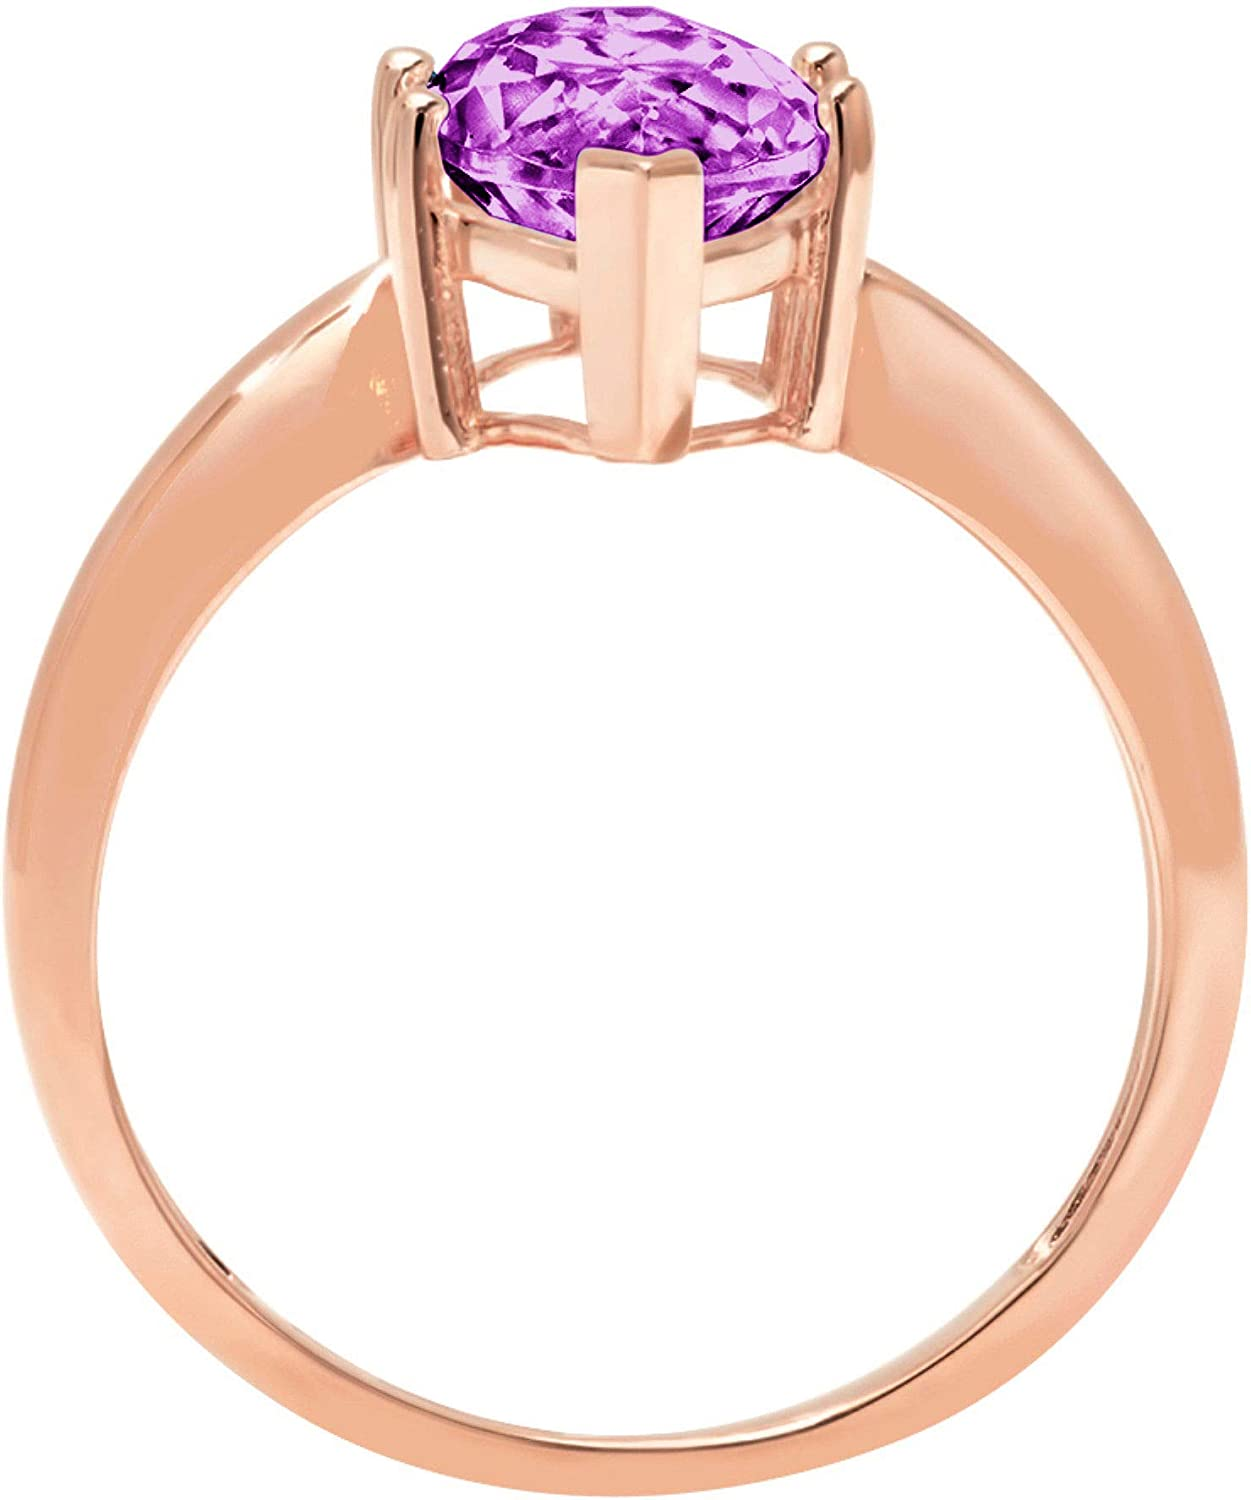 Clara Pucci 2.50 ct Brilliant Marquise Cut Solitaire Simulated Alexandrite Gem 6-Prong Engagement Wedding Bridal Promise Anniversary Ring Solid 18K Rose Gold for Women